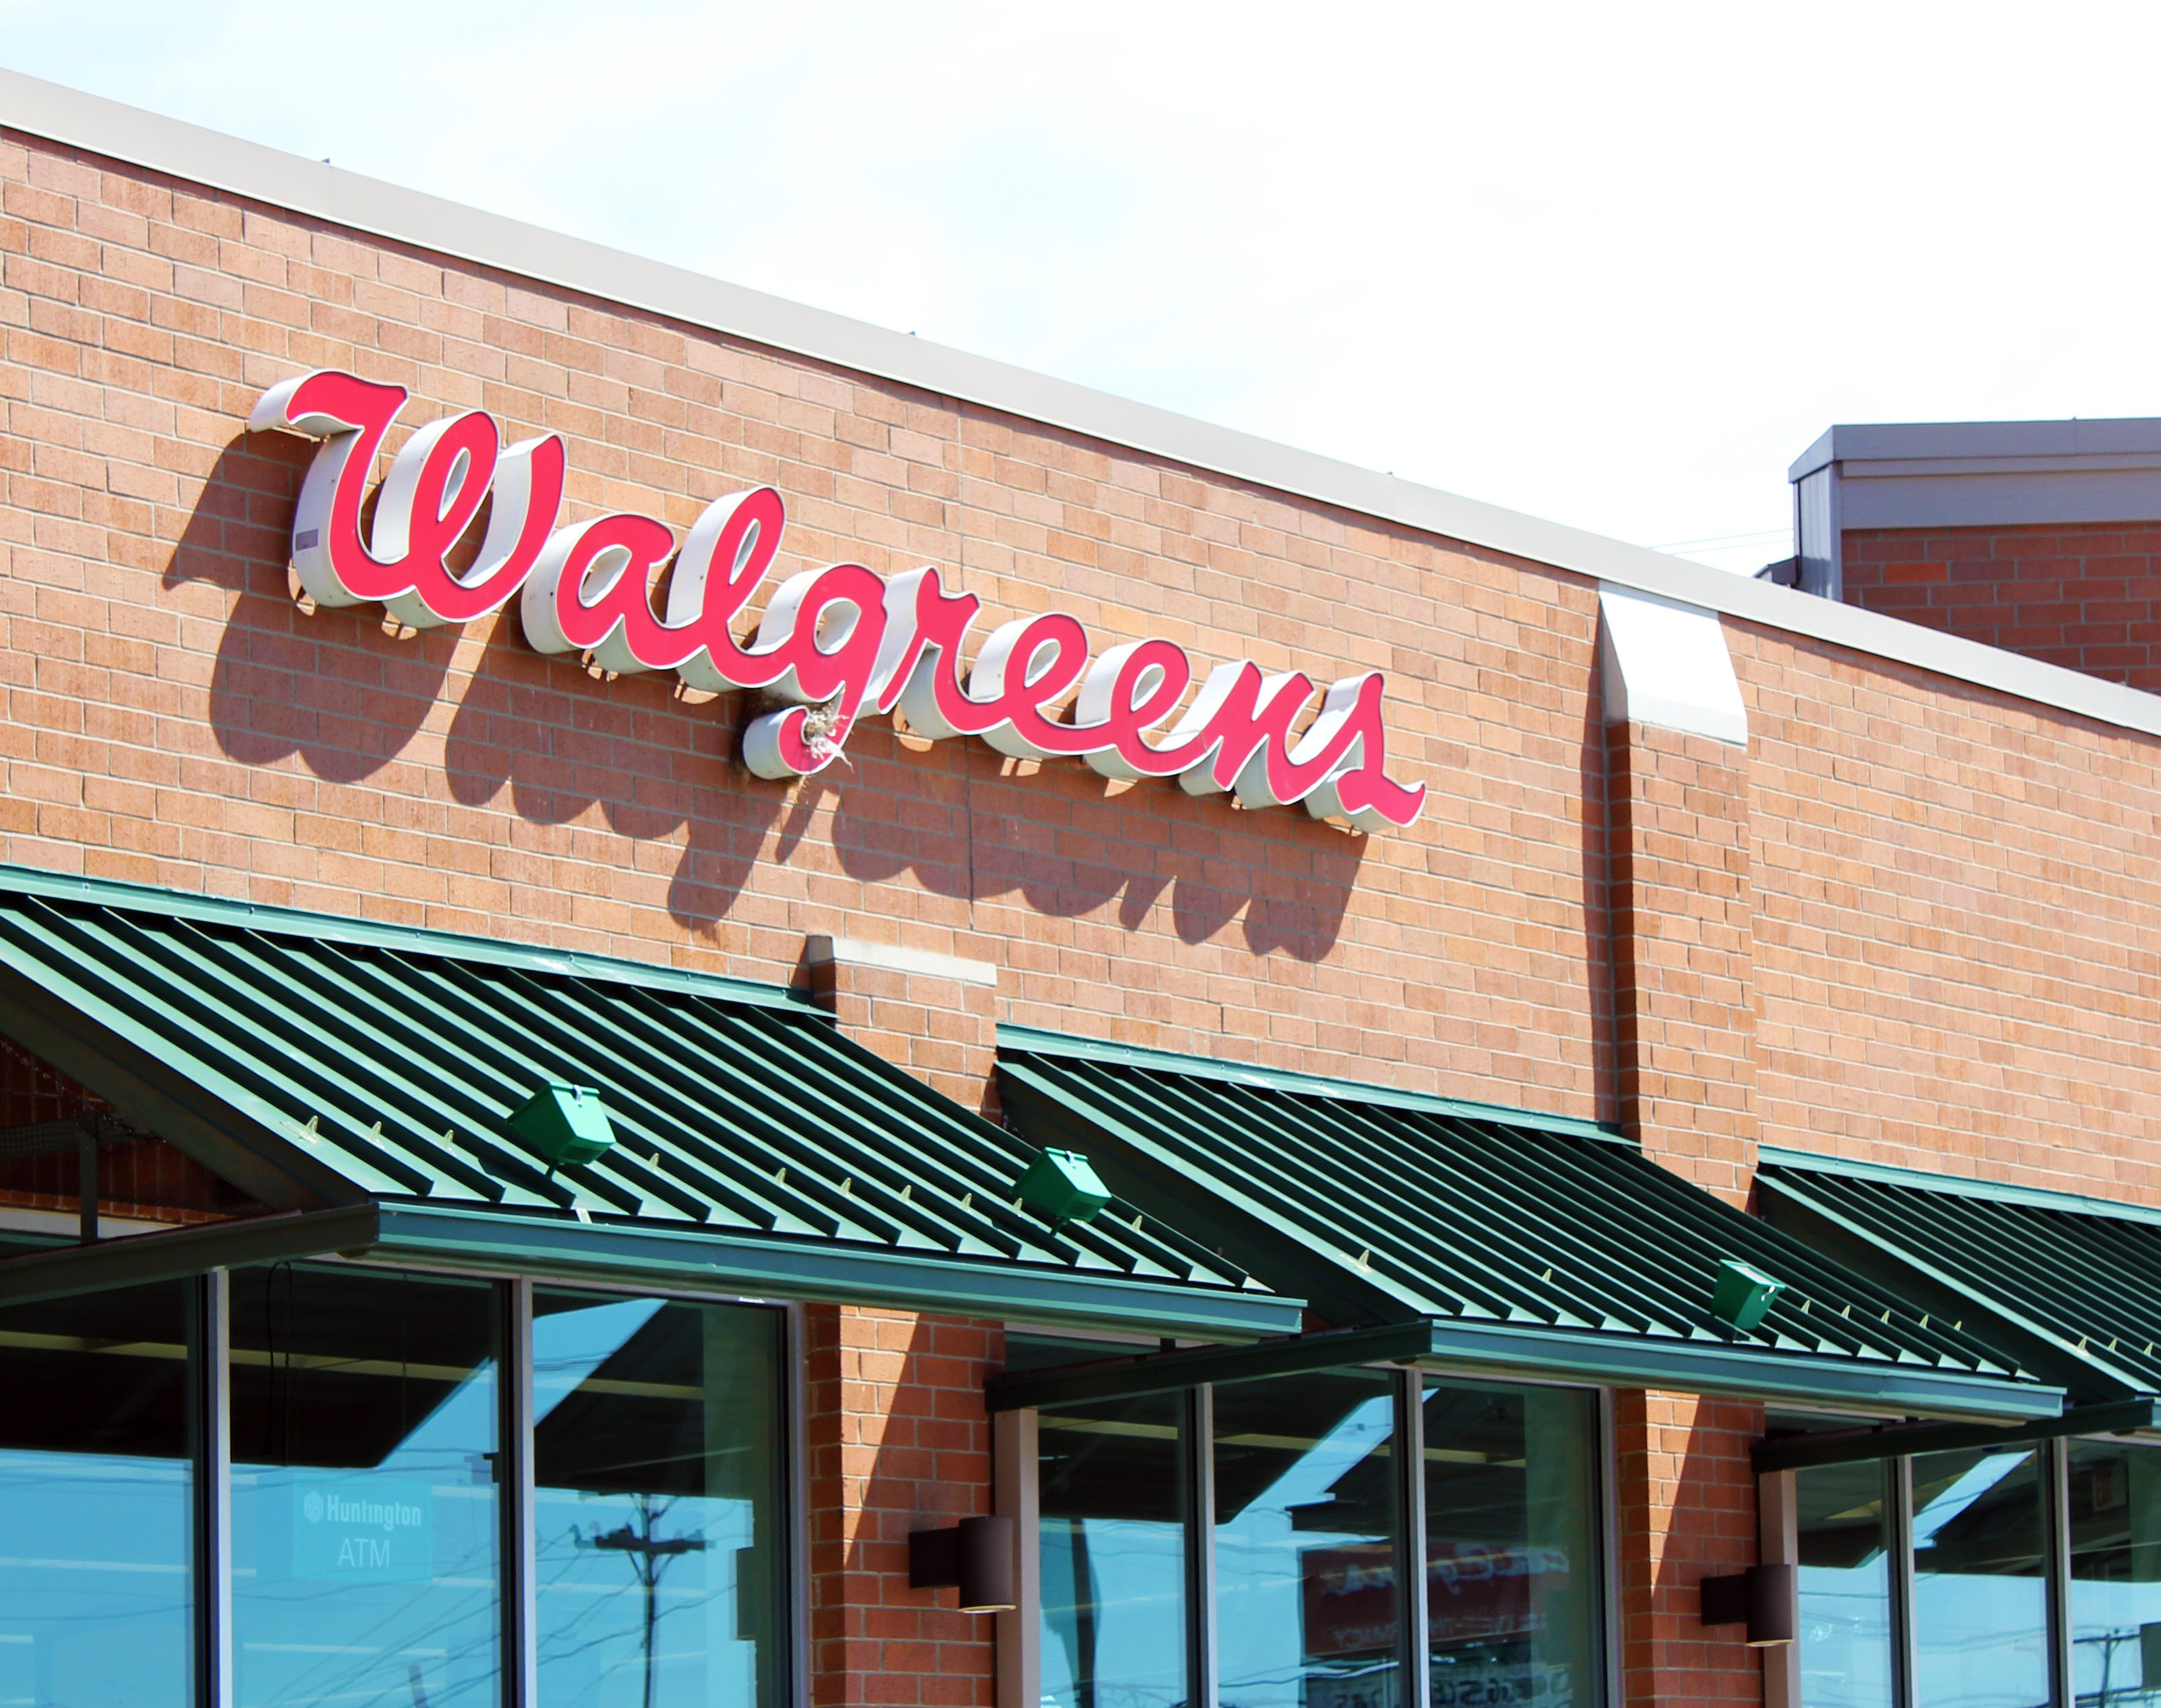 An image of the Walgreens sign.